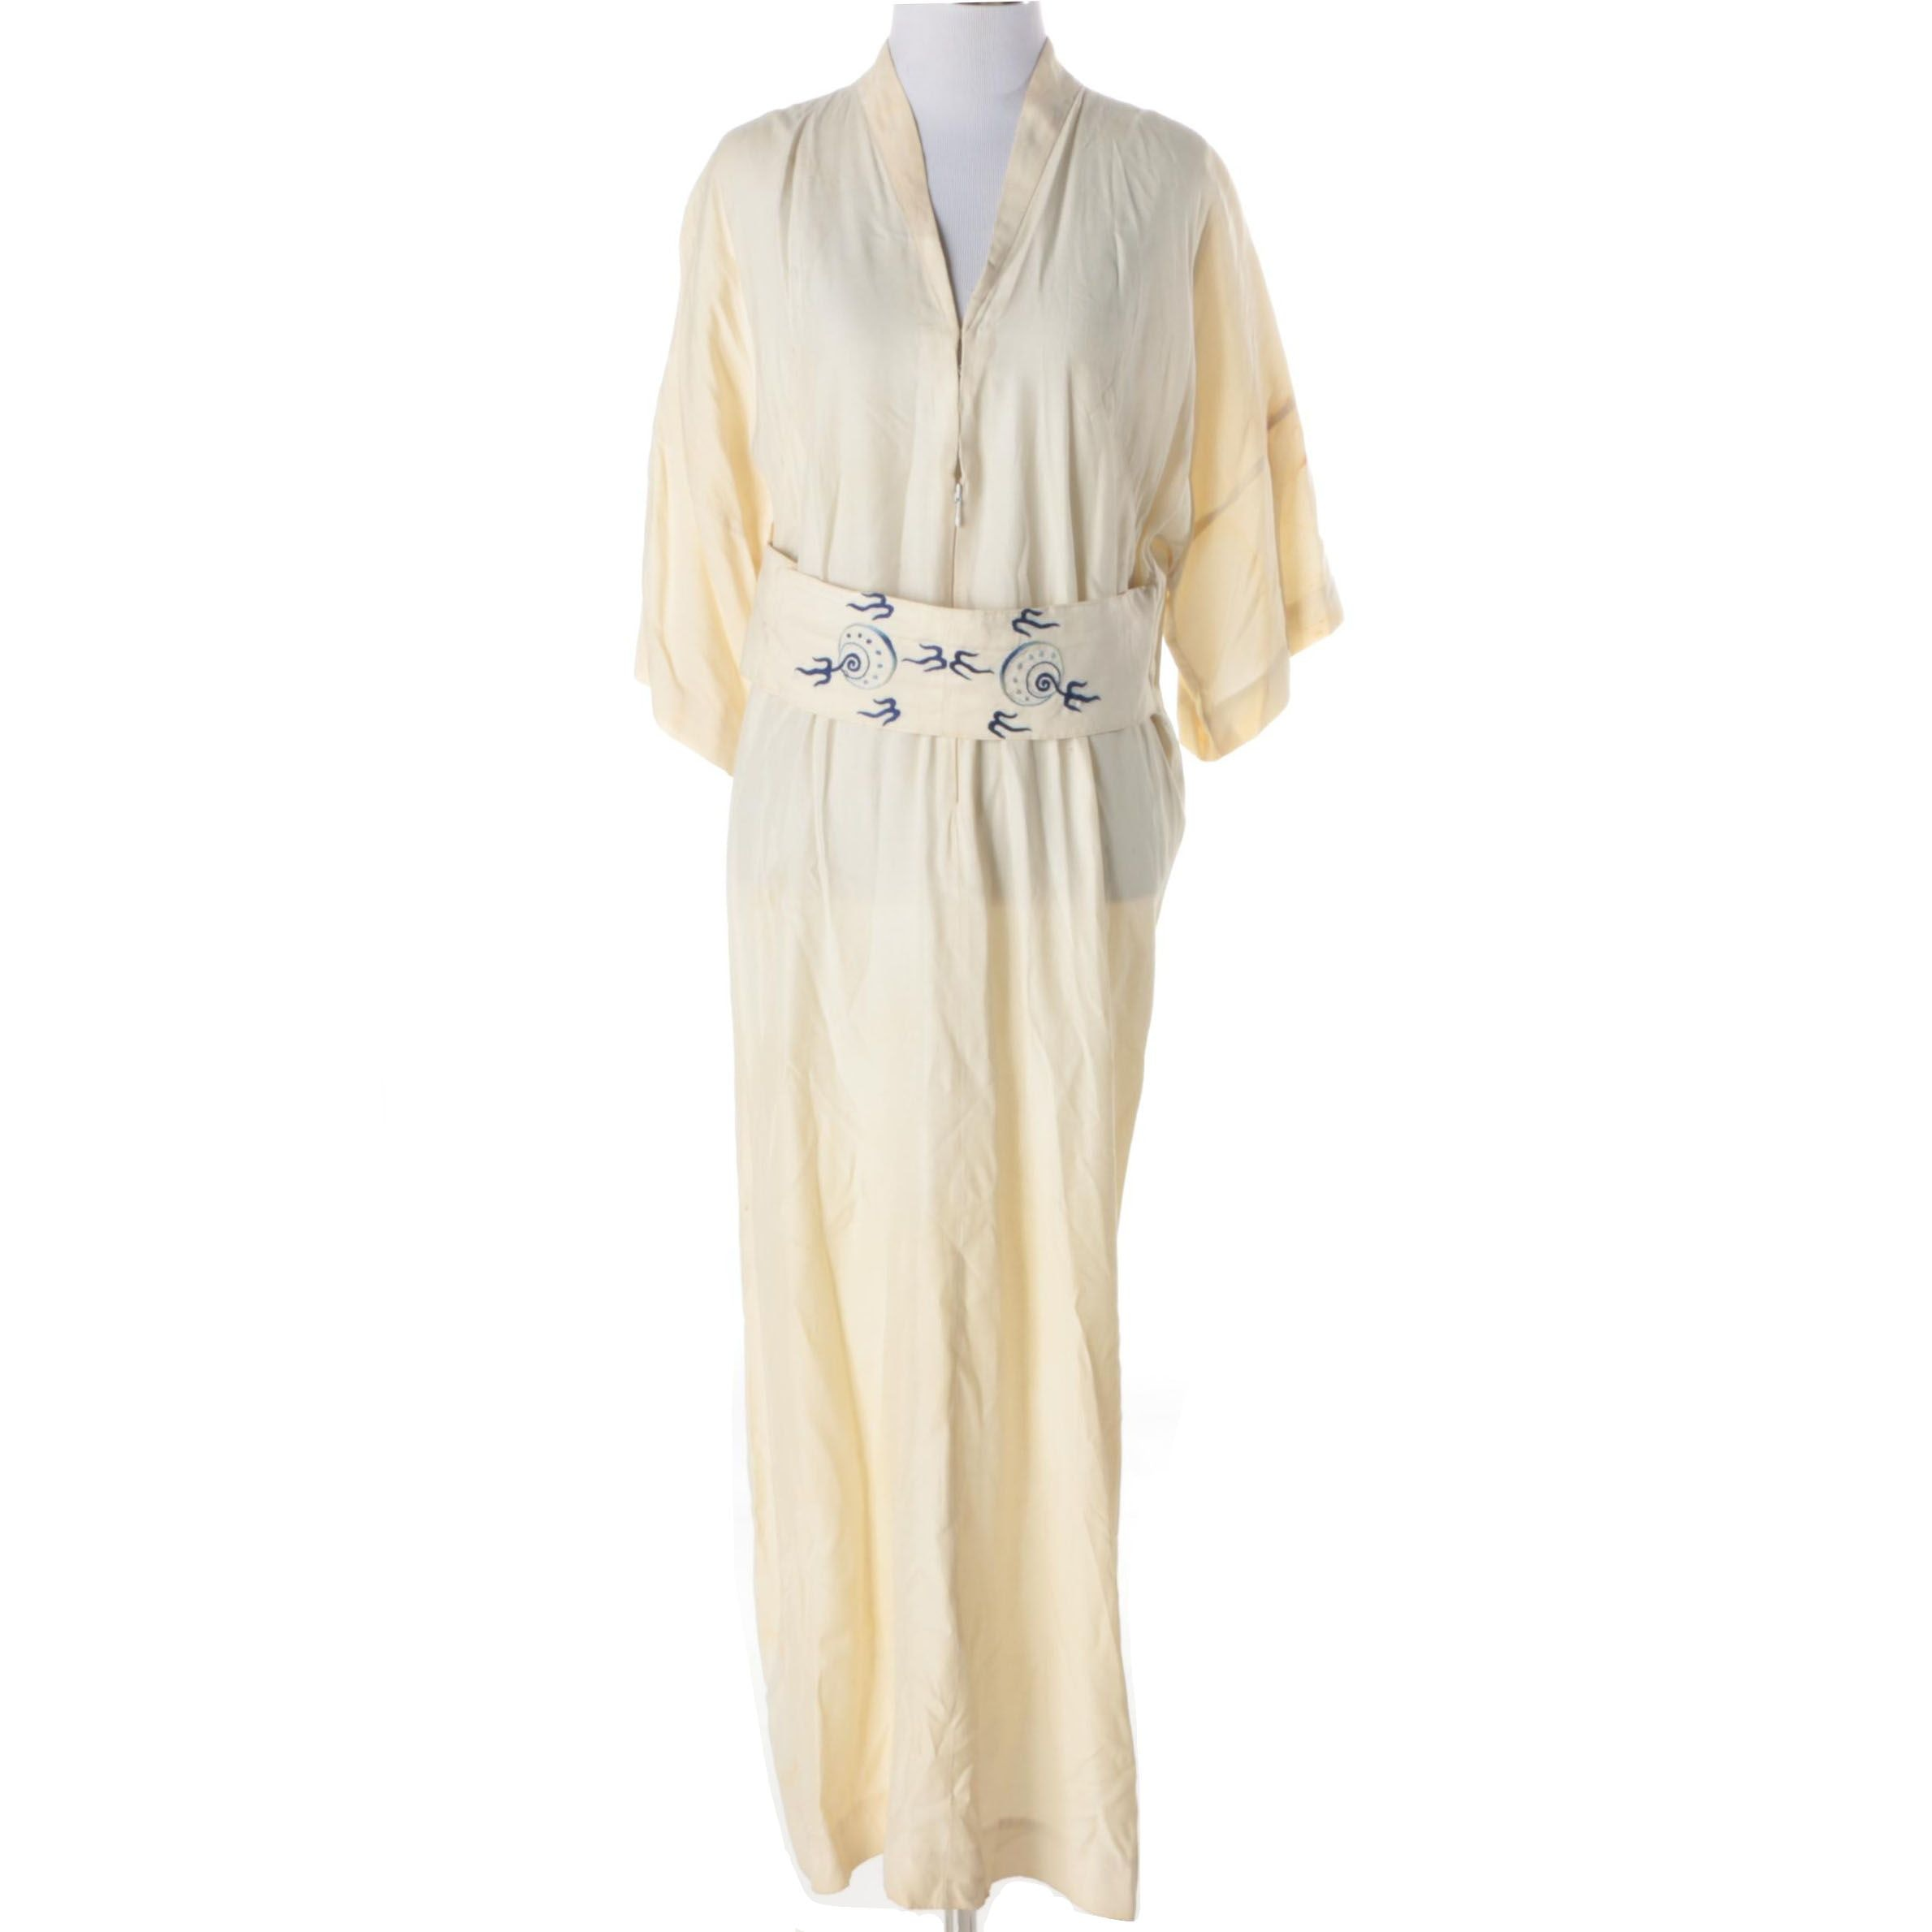 Women's Circa 1960s Vintage Dynasty Asian Inspired House Coat